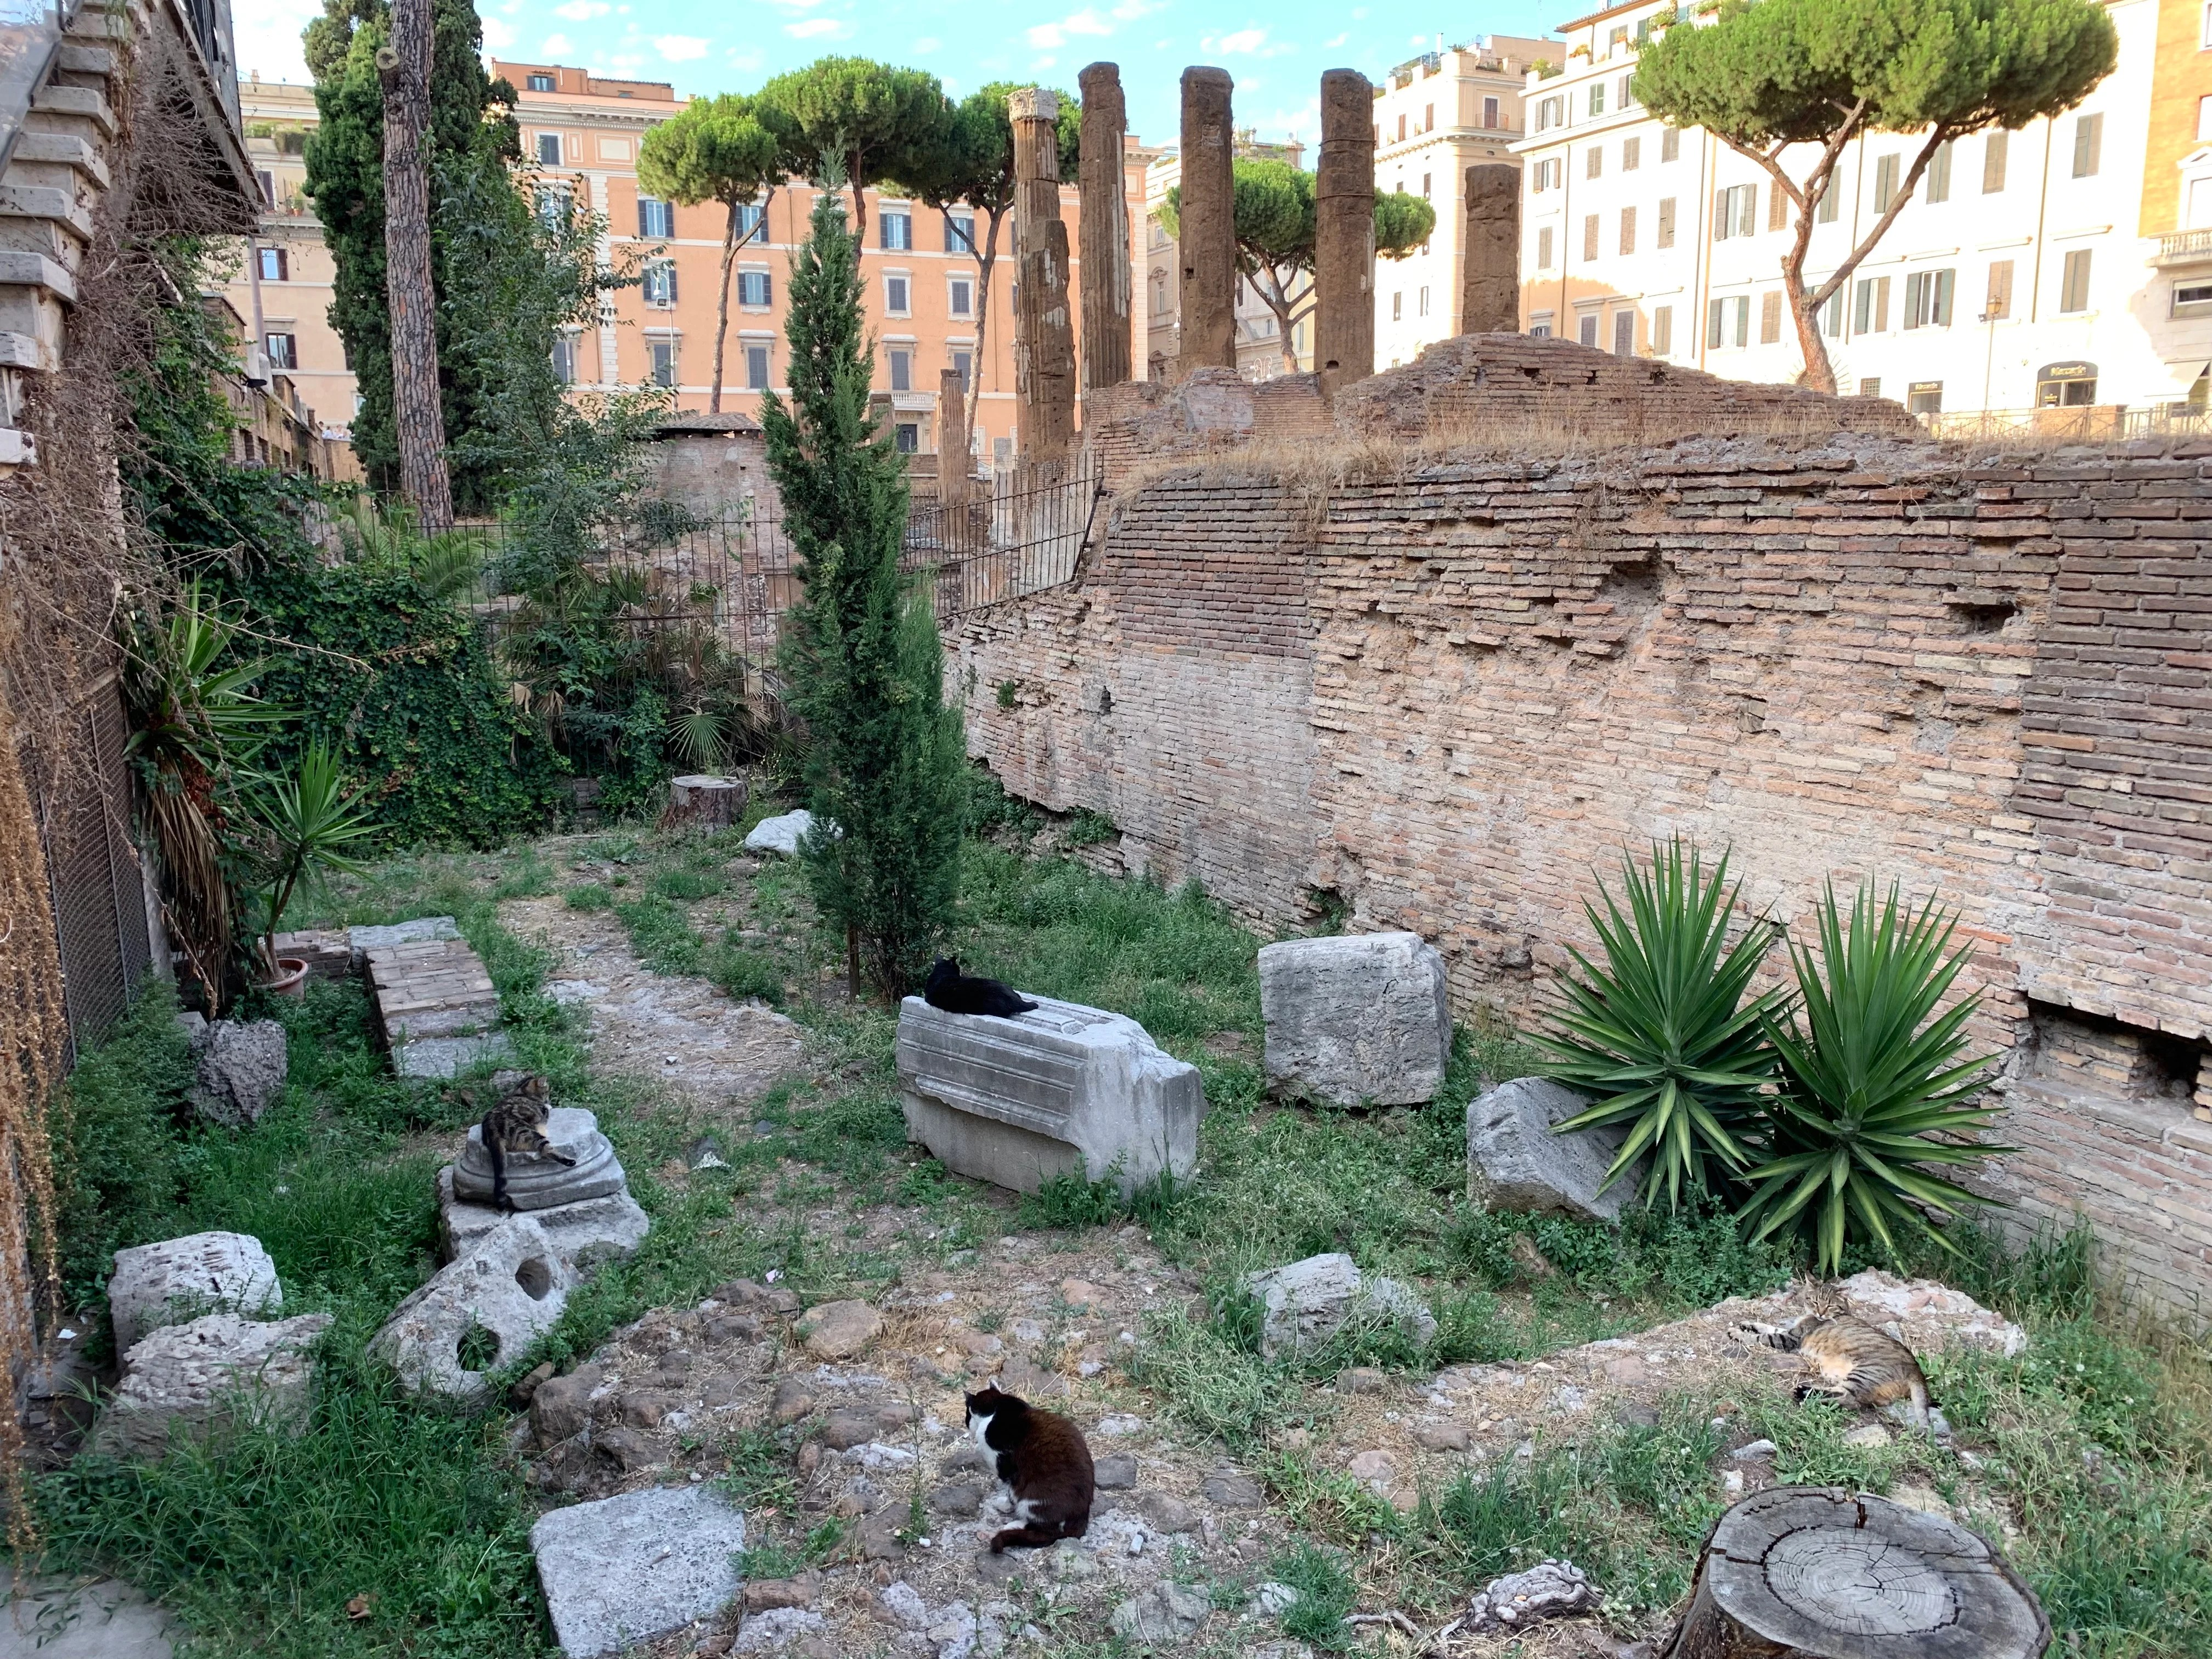 Why You Need to Add This Cat Sanctuary in an Archeological Site to Your Bucket List